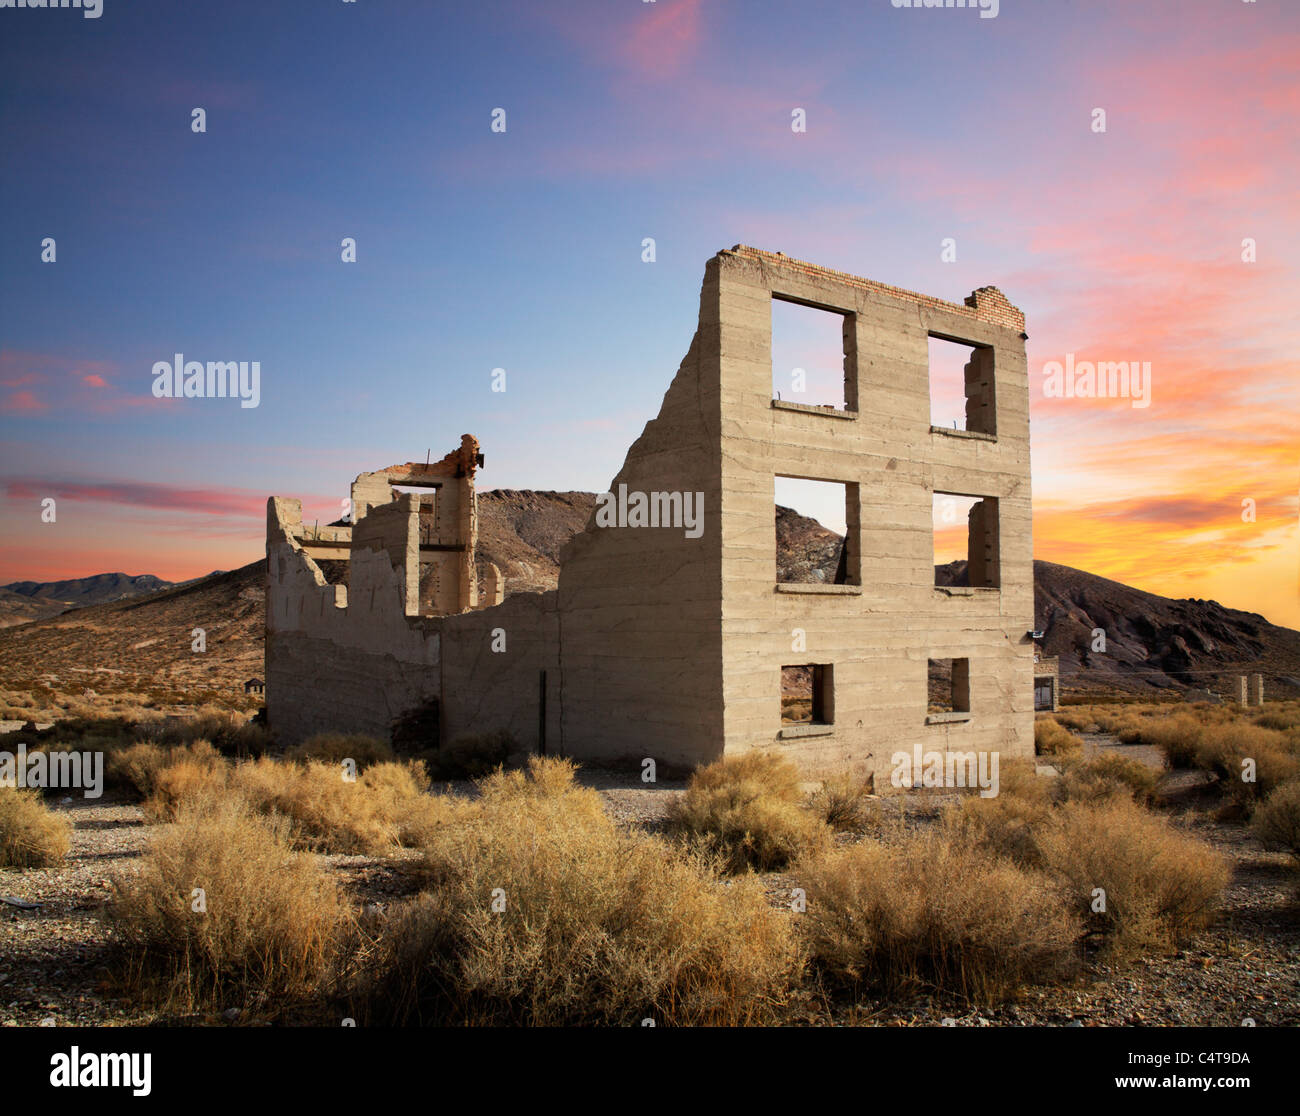 The Remnant Of A Bygone Era, Sunset Over A Crumbling Building At Rhyolite Nevada, An Abandoned Town Near Death Valley - Stock Image